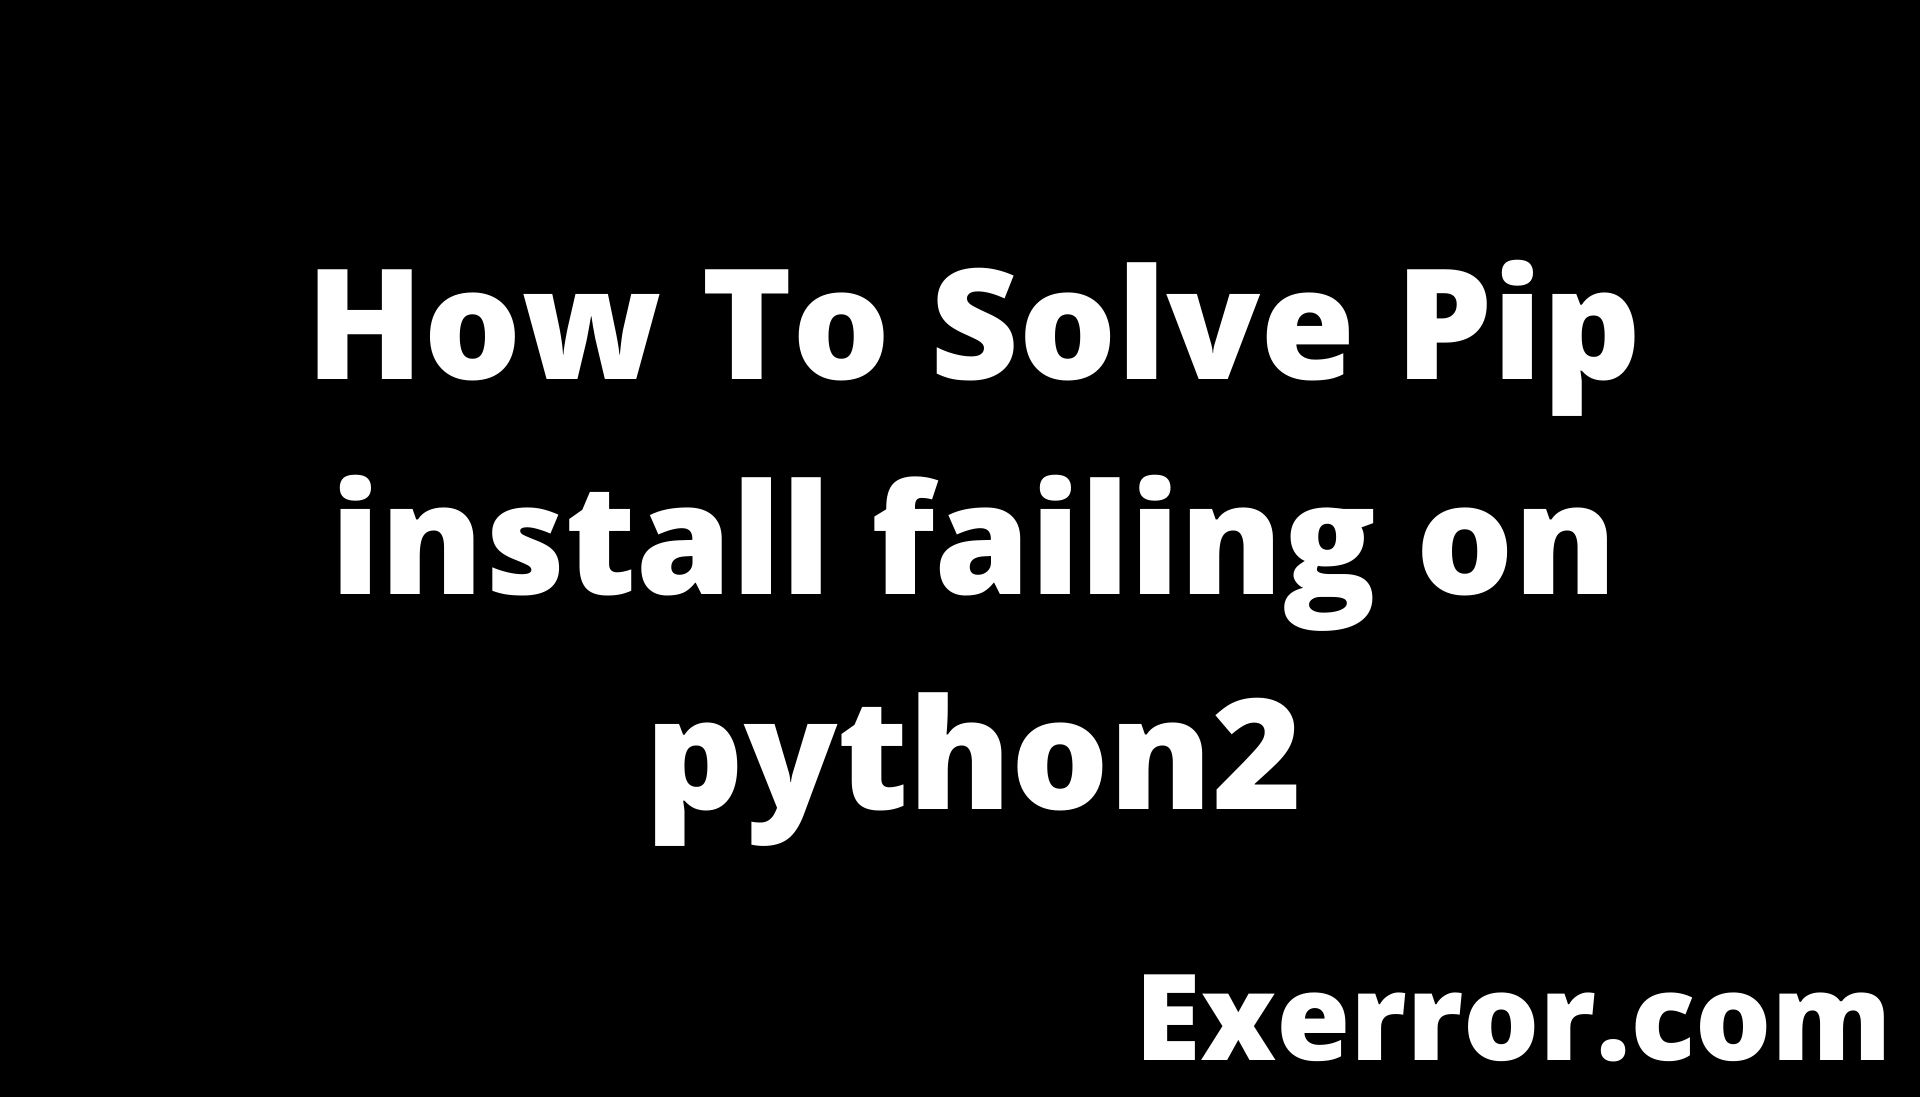 Pip install failing on python2, how to solve Pip install failing on python2, install failing on python2, pip install failing, solve pip install